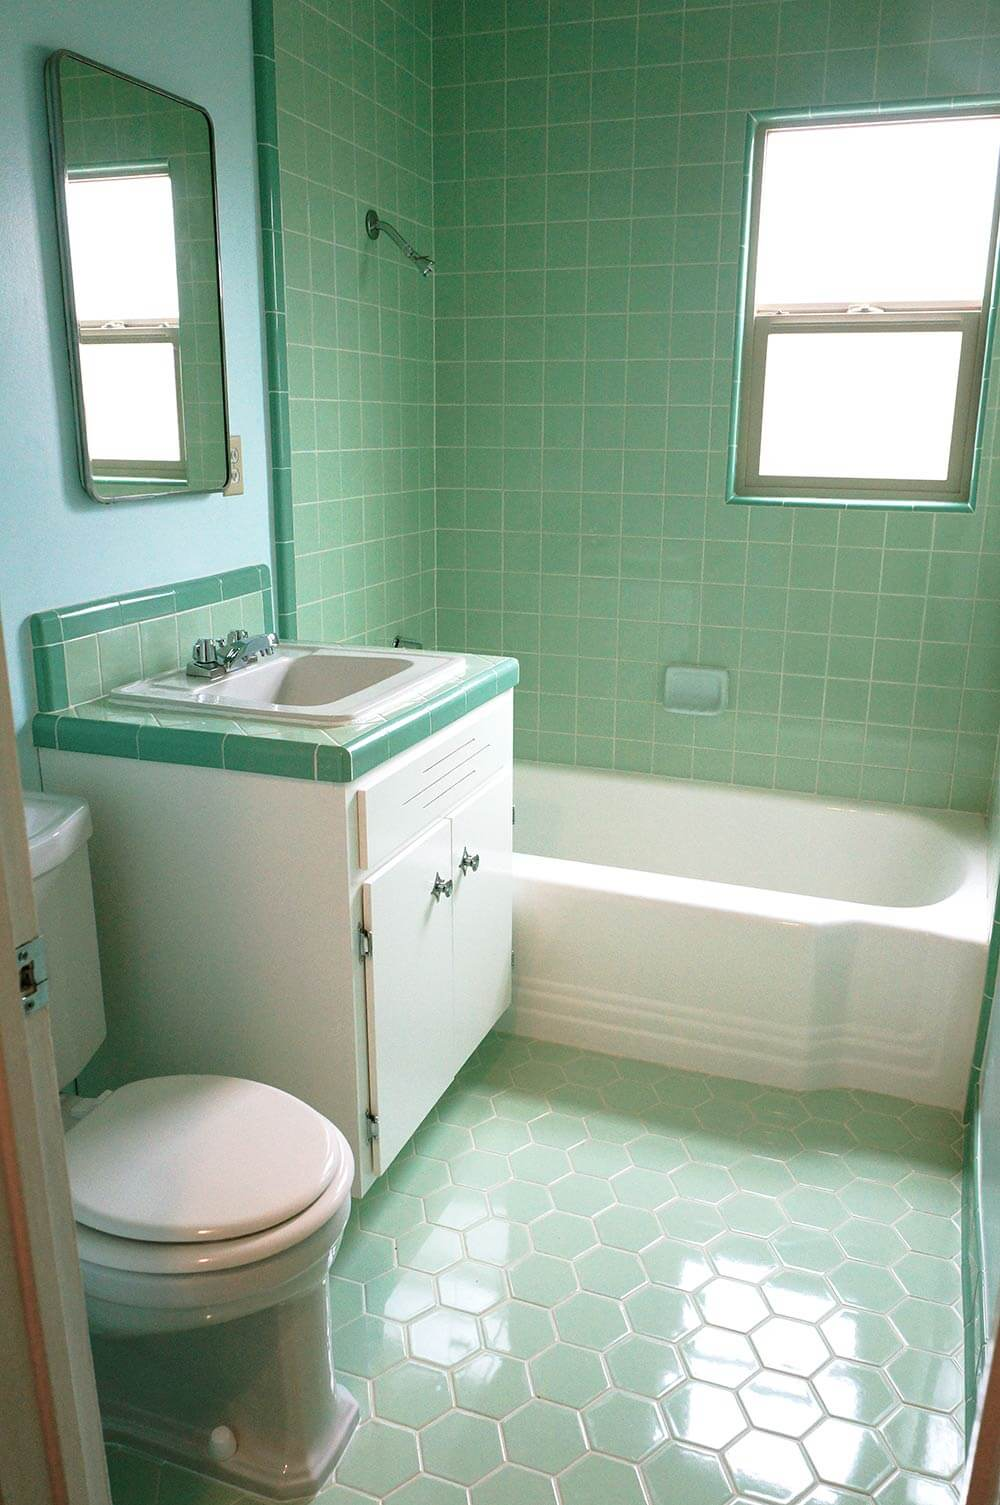 The color green in kitchen and bathroom sinks tubs and for Bathroom sink remodel